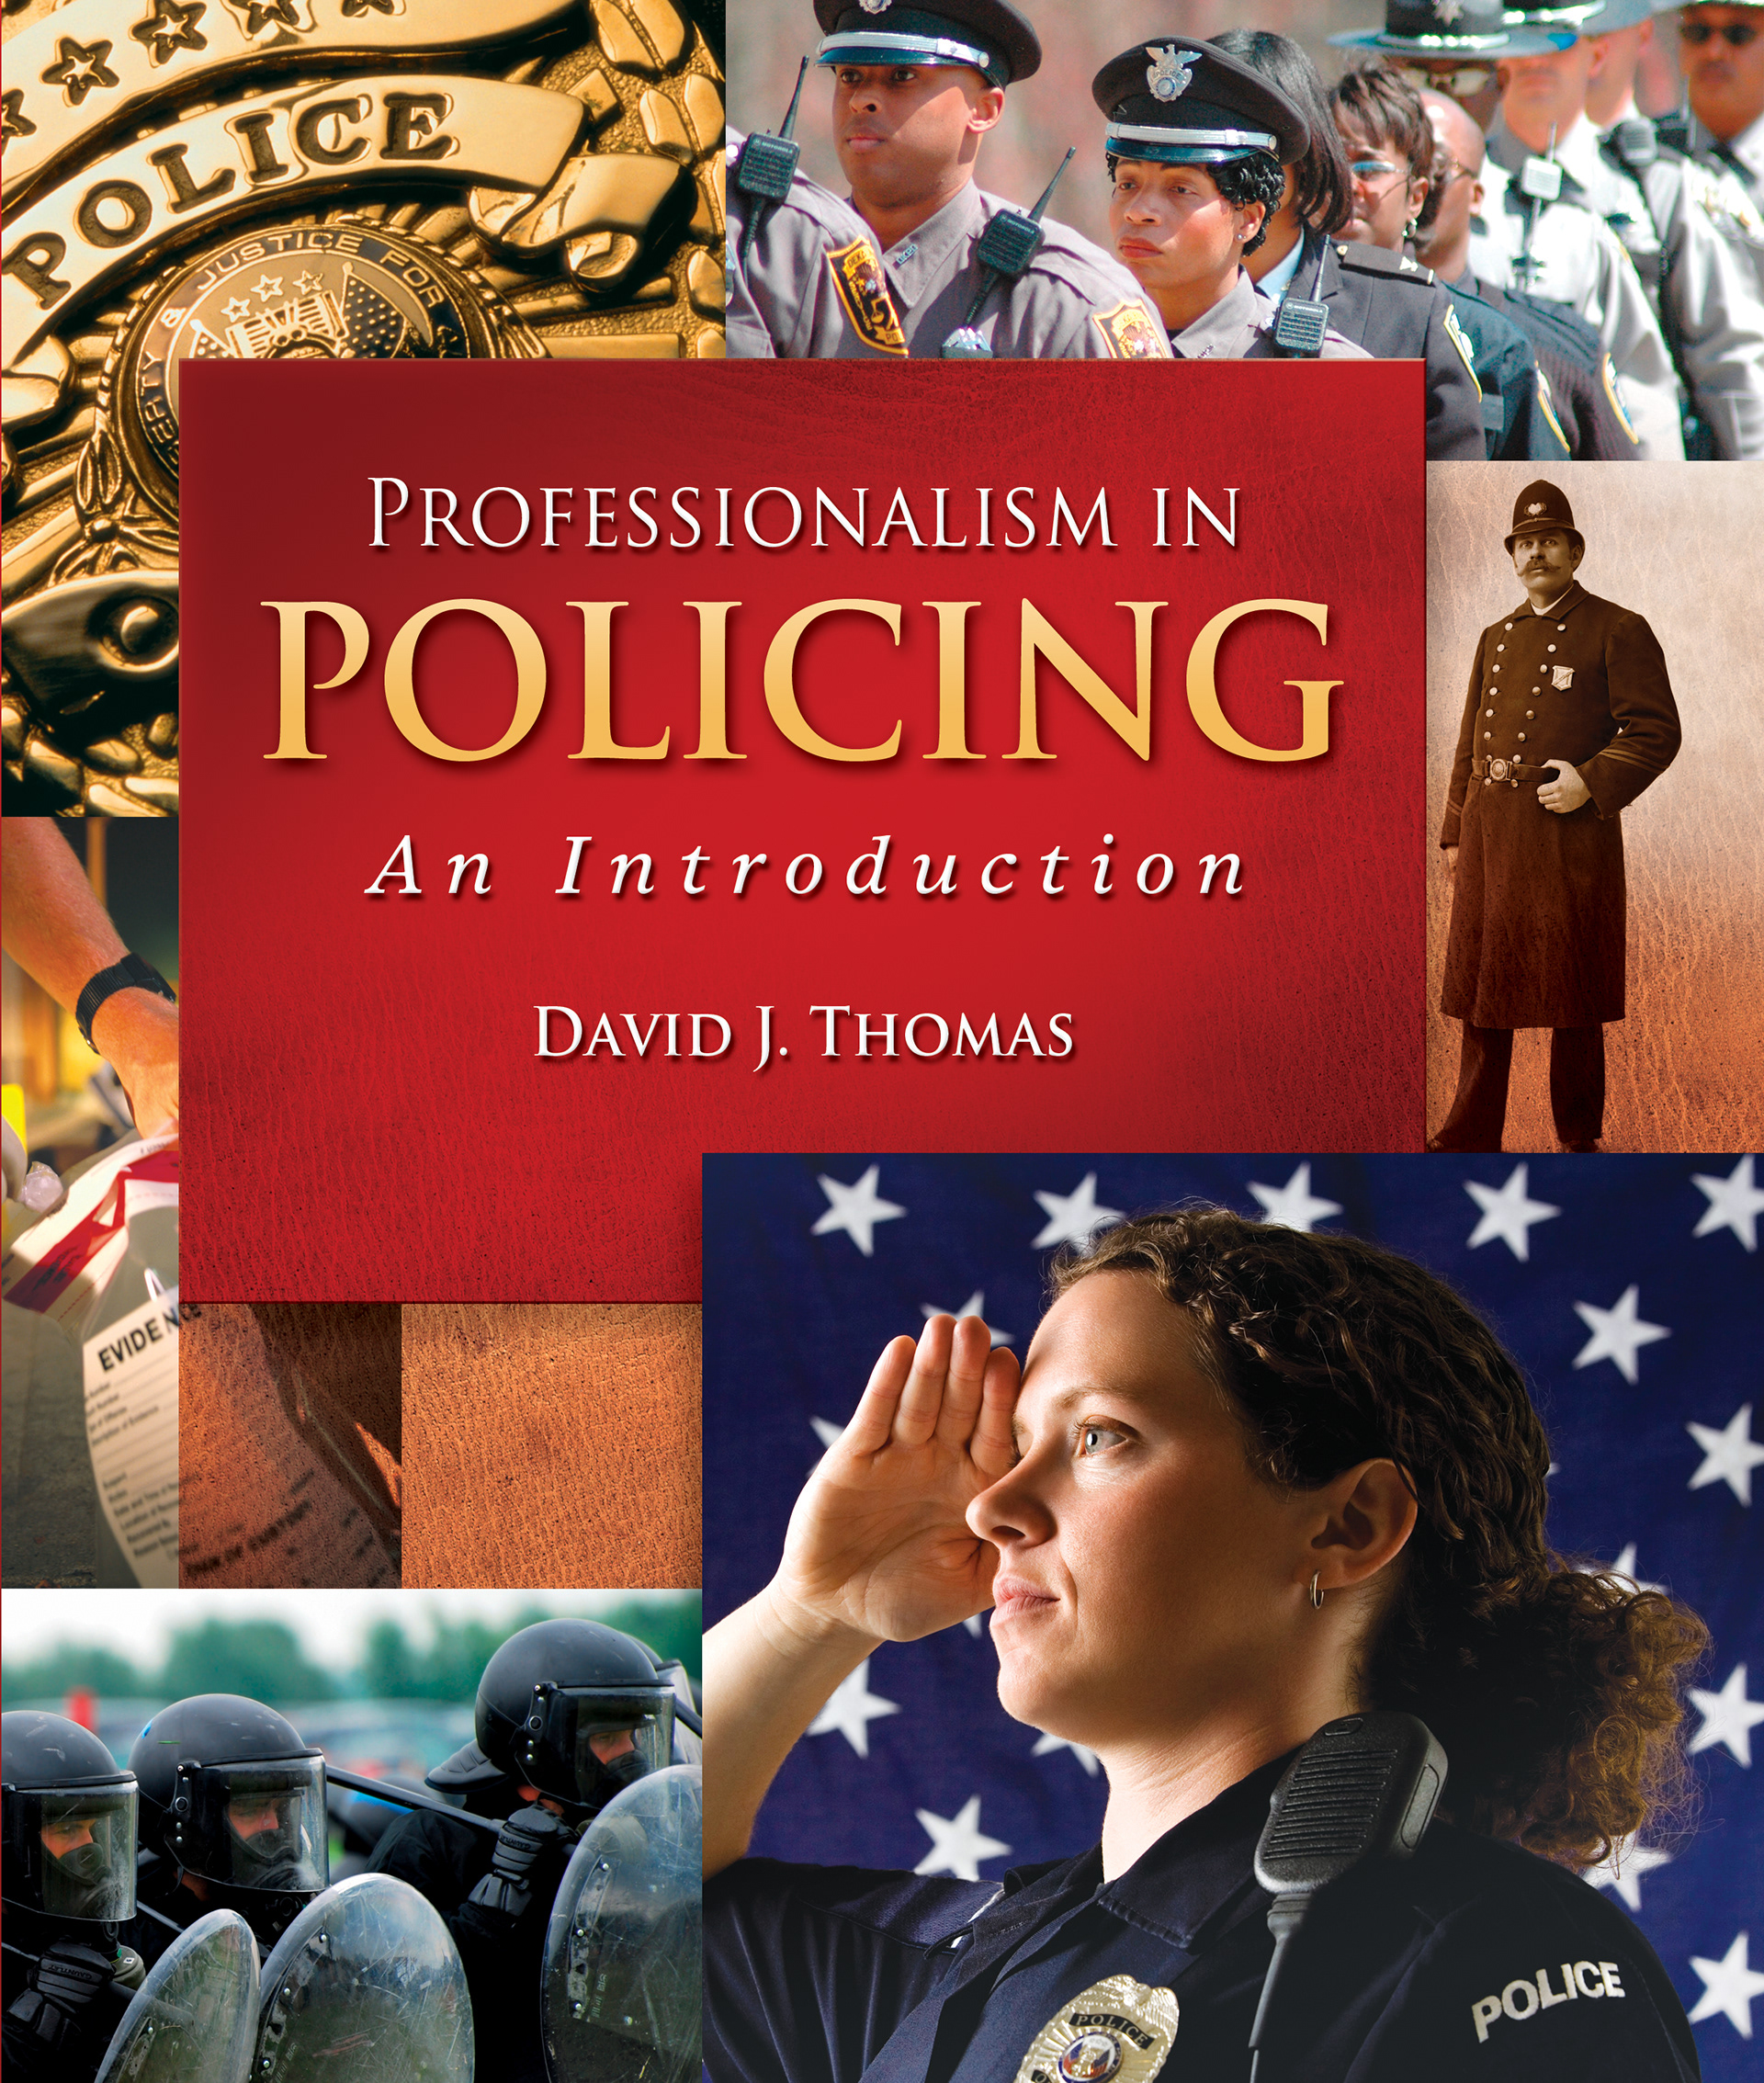 ethics discretion and professionalism in policing The return of police professionalism 6 7 2 | new perspectives in policing cooperation with the public and, to facilitate that consultation and cooperation, authority within.